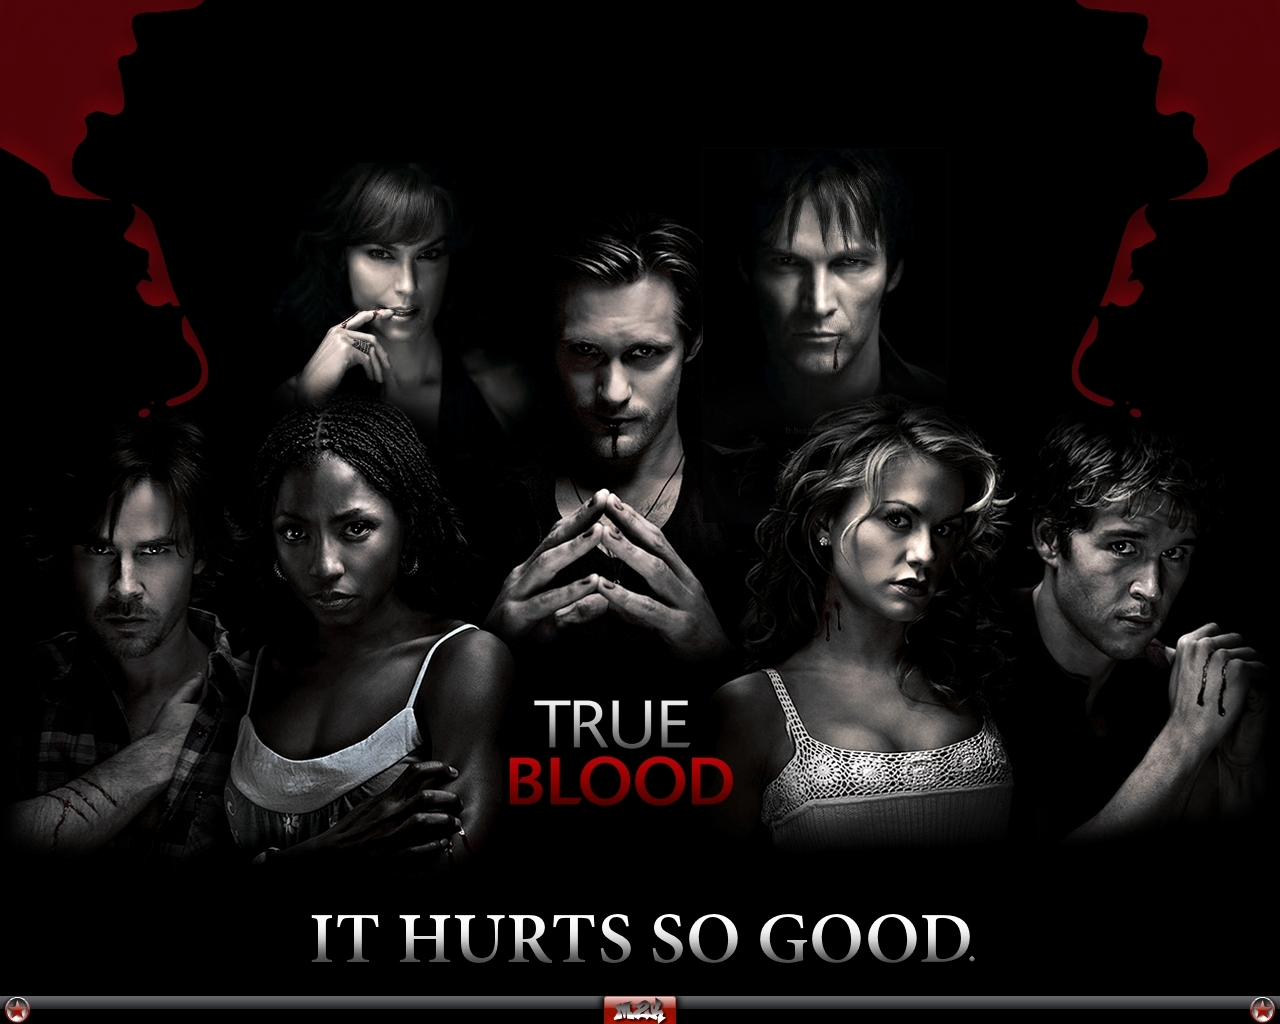 http://4.bp.blogspot.com/-KQL12he3Kdo/TfpiV-LOWrI/AAAAAAAAFJE/6oSktcoqHUU/s1600/true-blood-true-blood.jpg